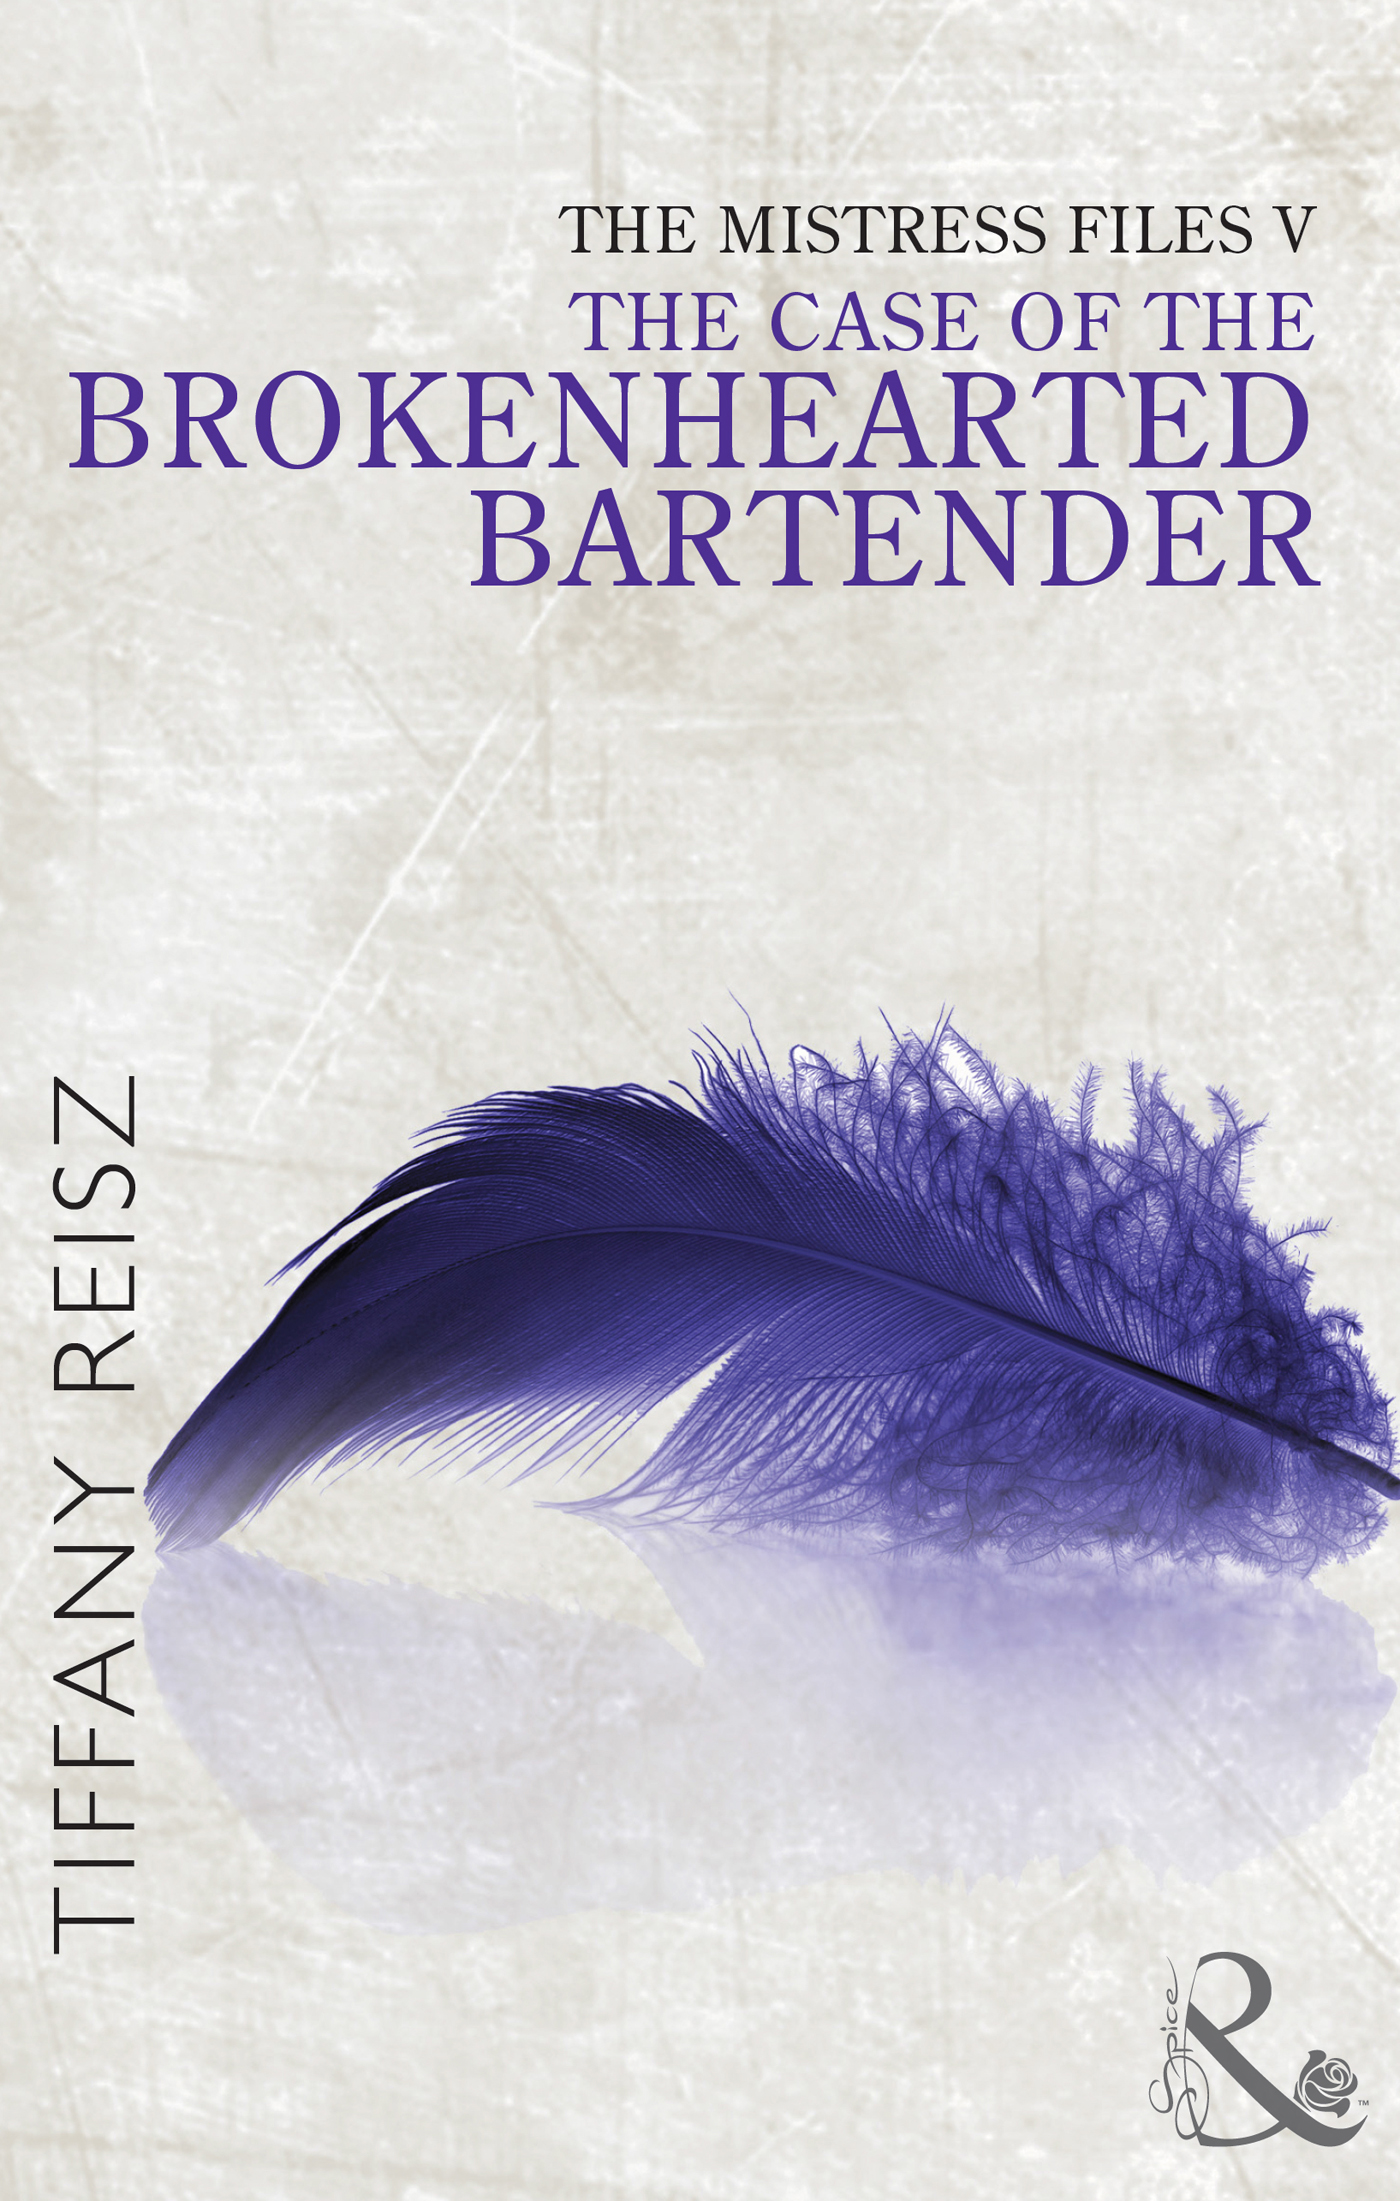 The Mistress Files: The Case of the Brokenhearted Bartender (The Original Sinners: The Red Years - short story)